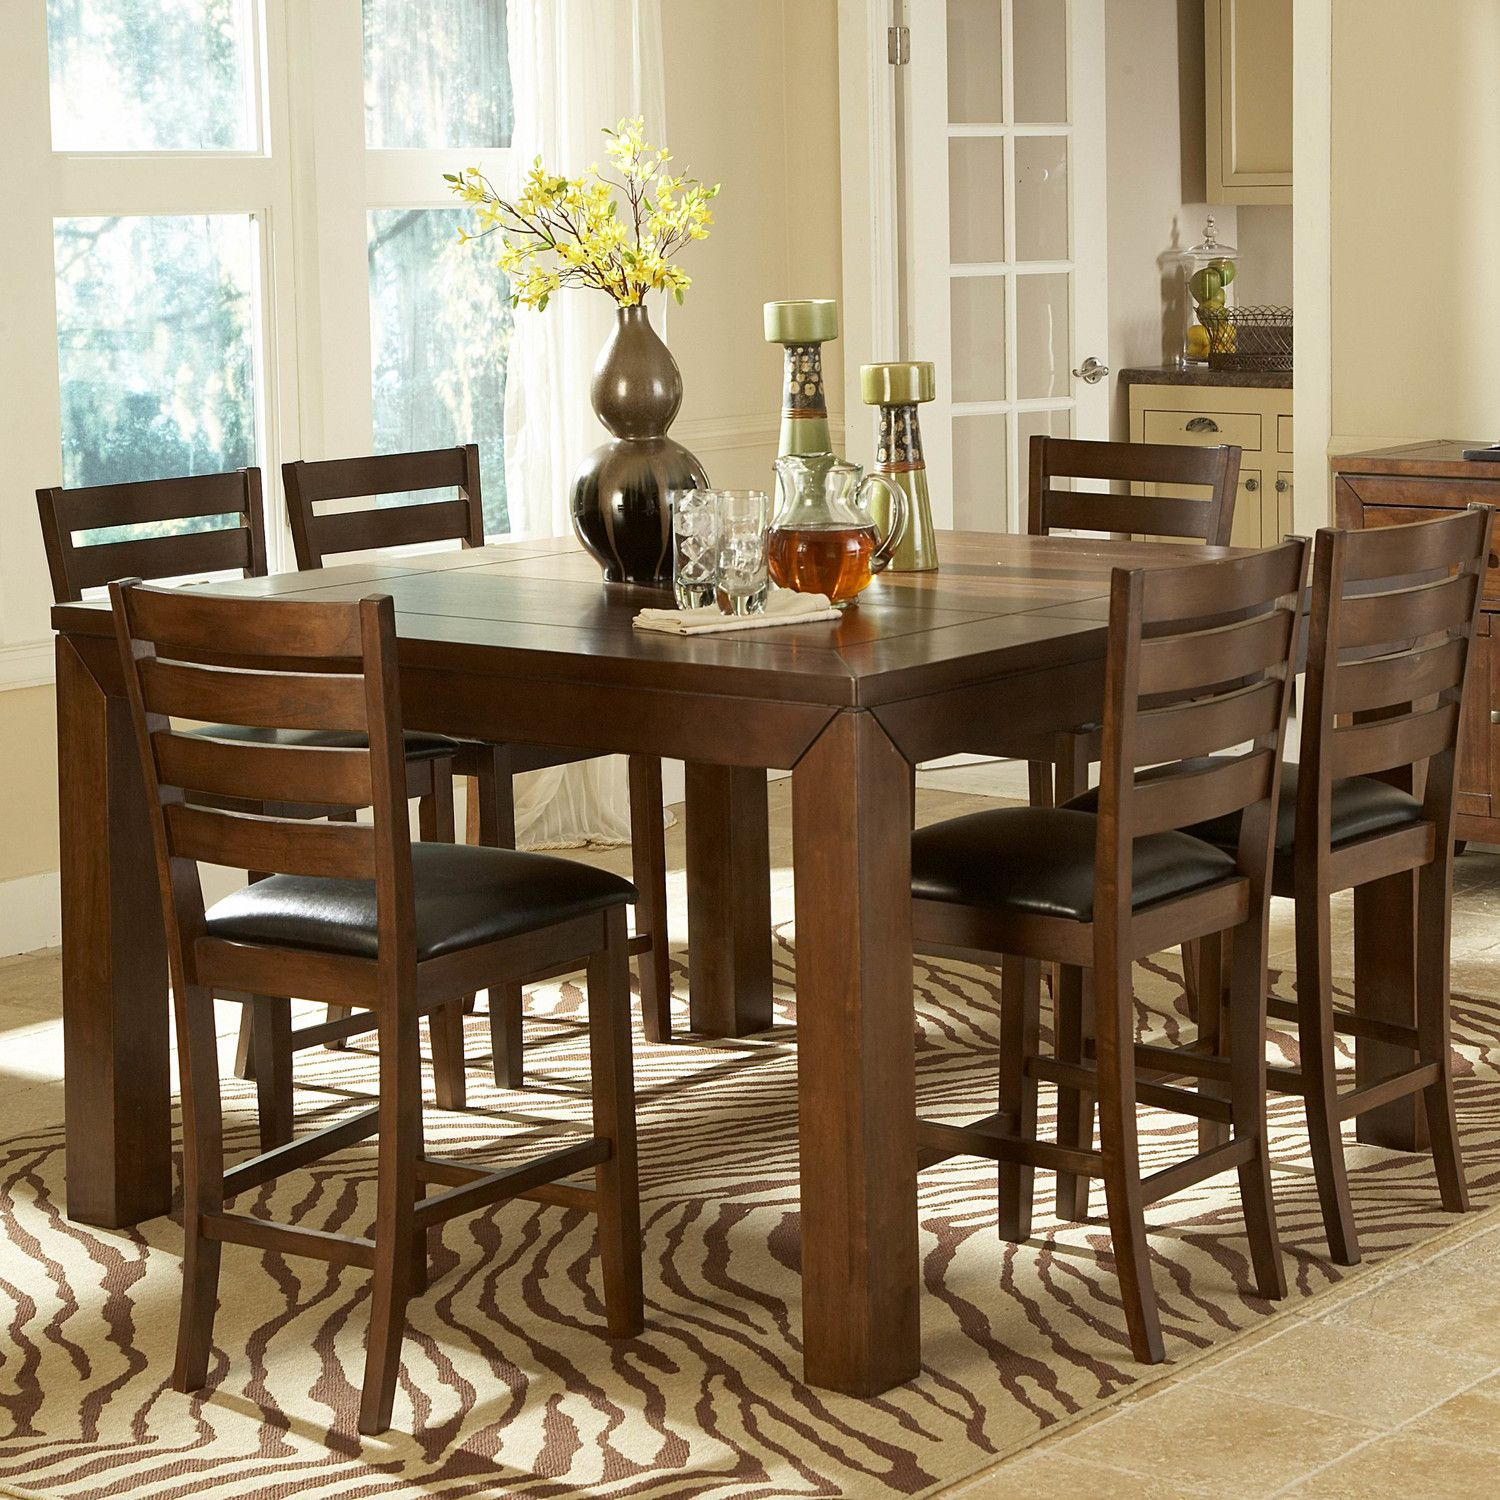 Woodbridge Home Designs Eagleville Counter Height Dining Table ...